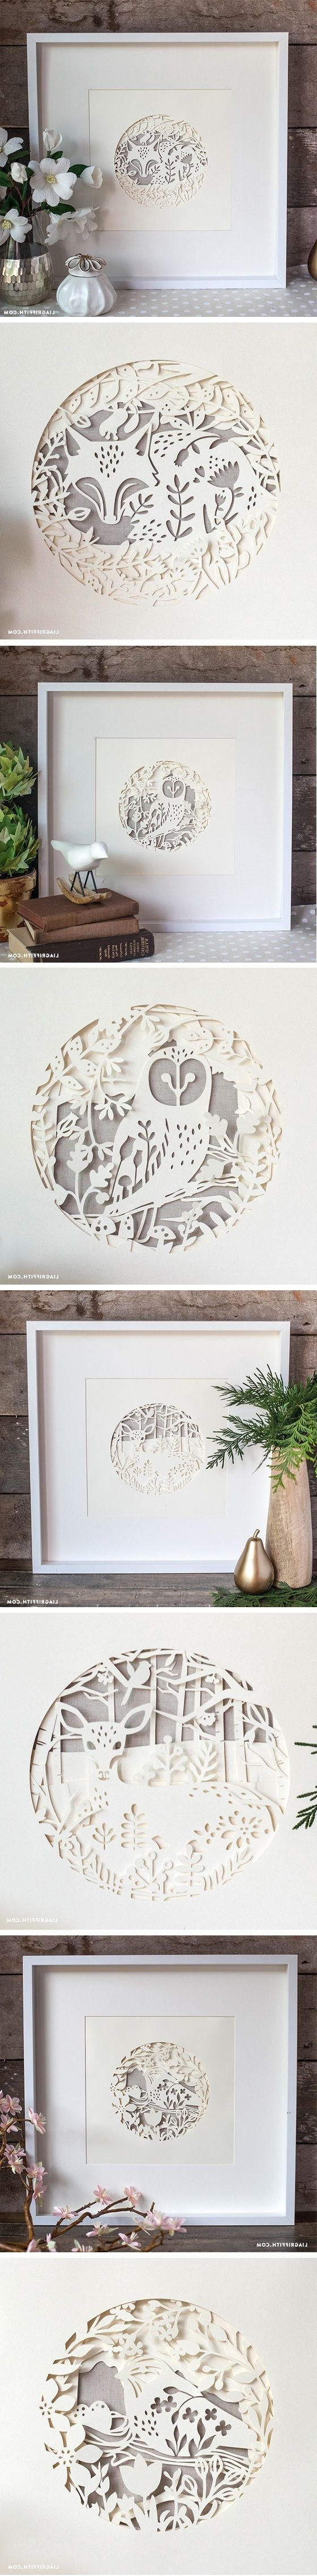 Most Popular Best 25+ Four Seasons Art Ideas On Pinterest (View 5 of 15)